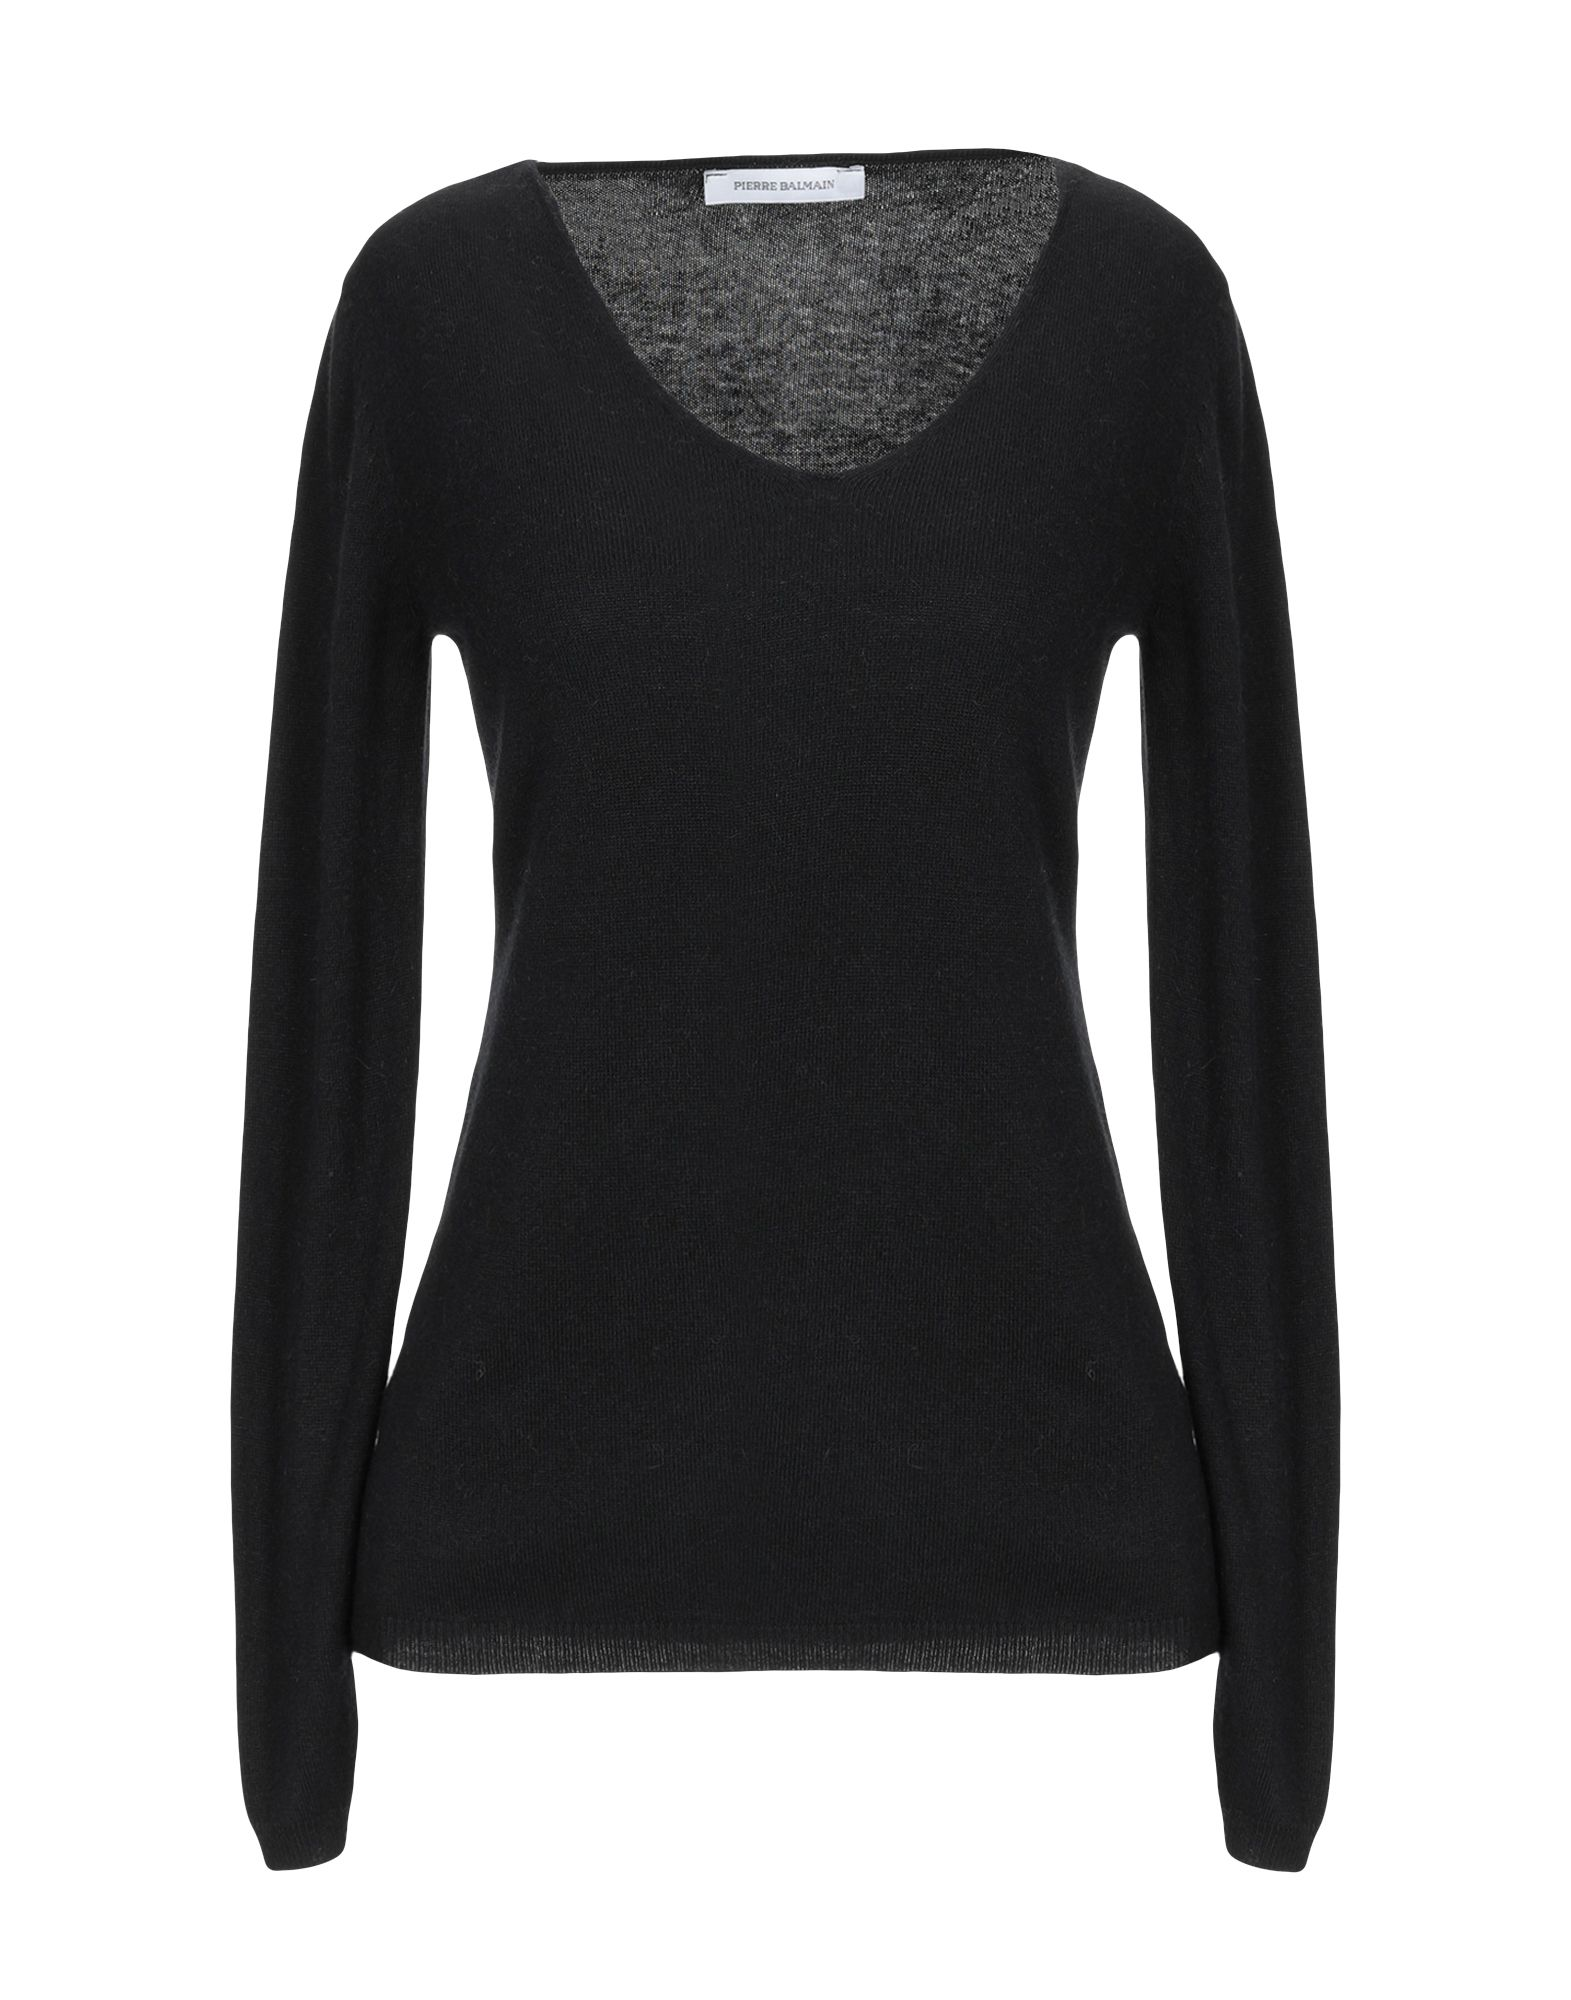 new items 2019 best sell 2019 clearance sale PIERRE BALMAIN Jumper - Jumpers and Sweatshirts   YOOX.COM